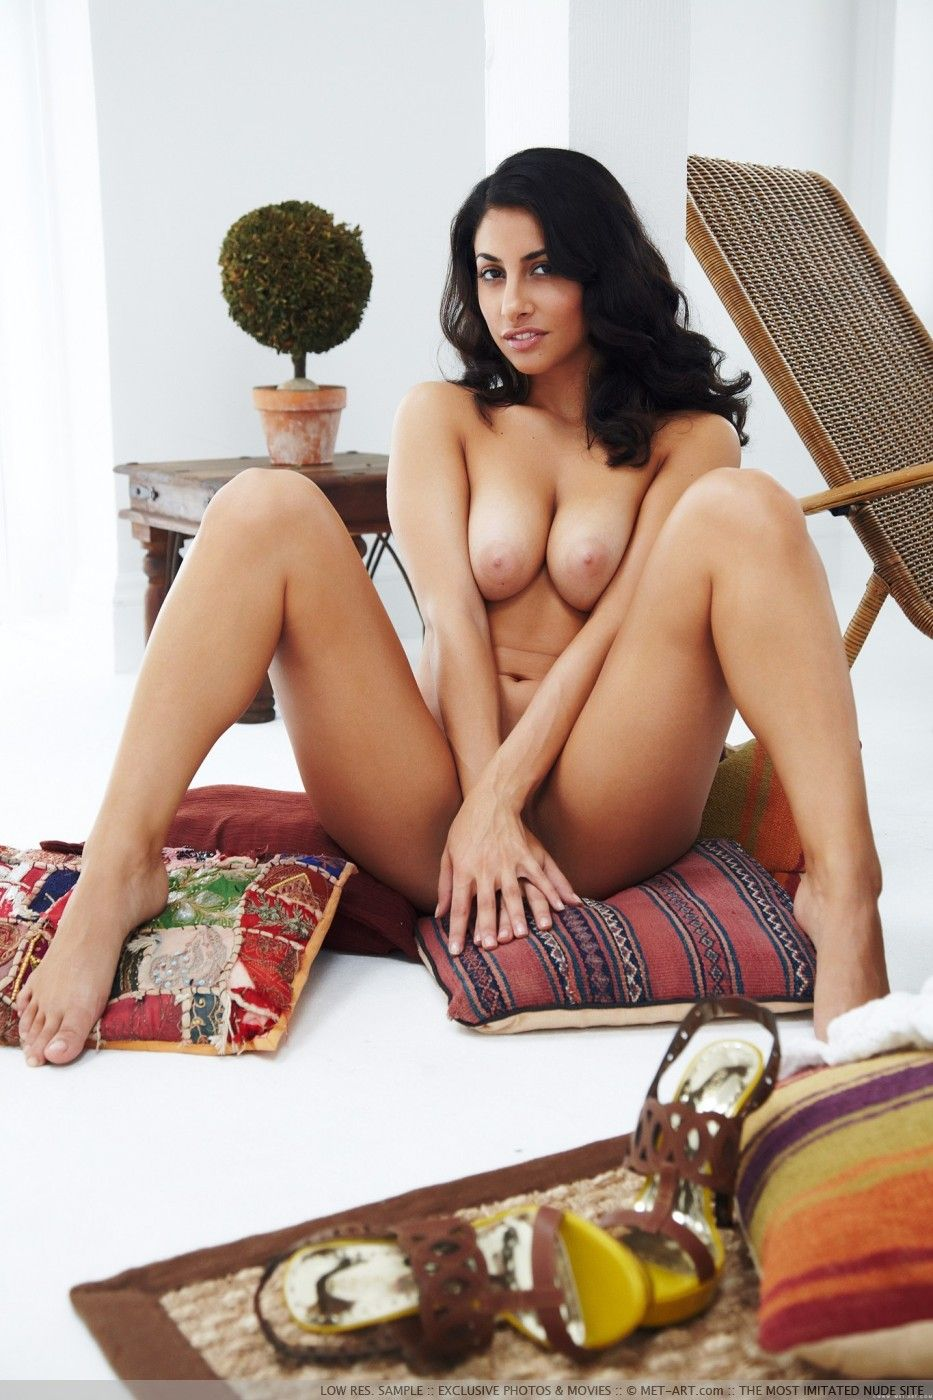 The I. recommendet dasi artty Sex gril